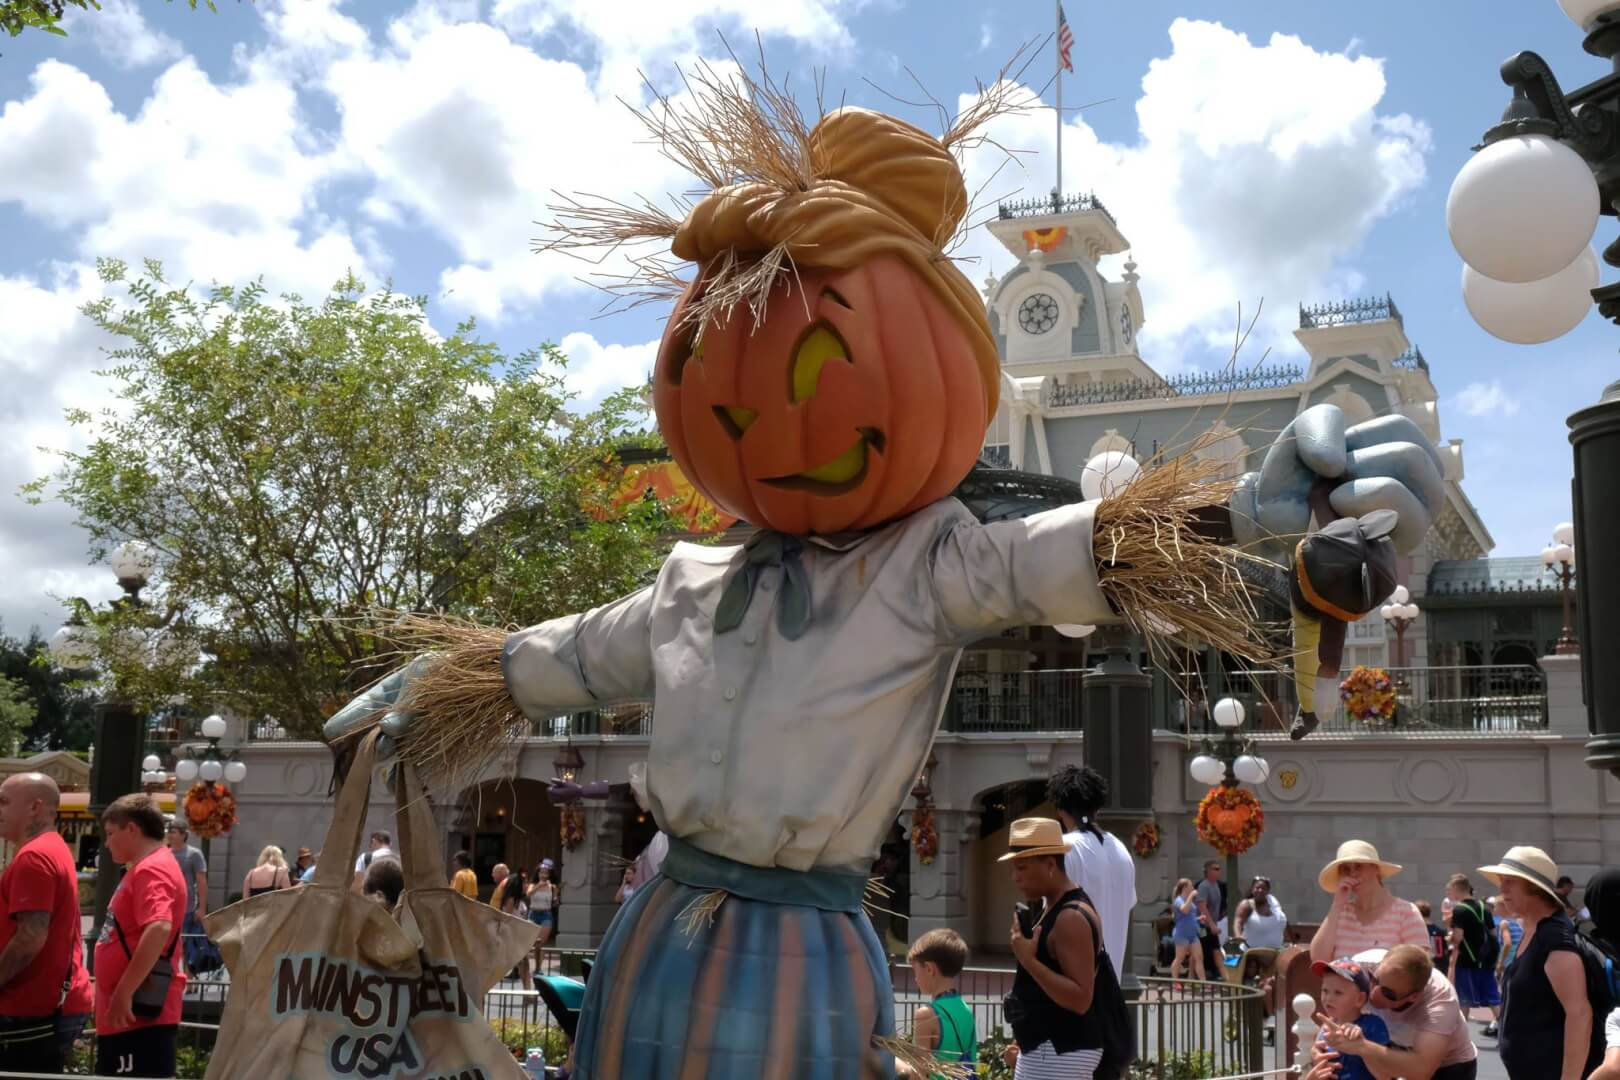 at the beginning of main street is where you can find several scarecrows posed with different props and festive outfits all of them appear welcoming and - Disney World Halloween Decorations